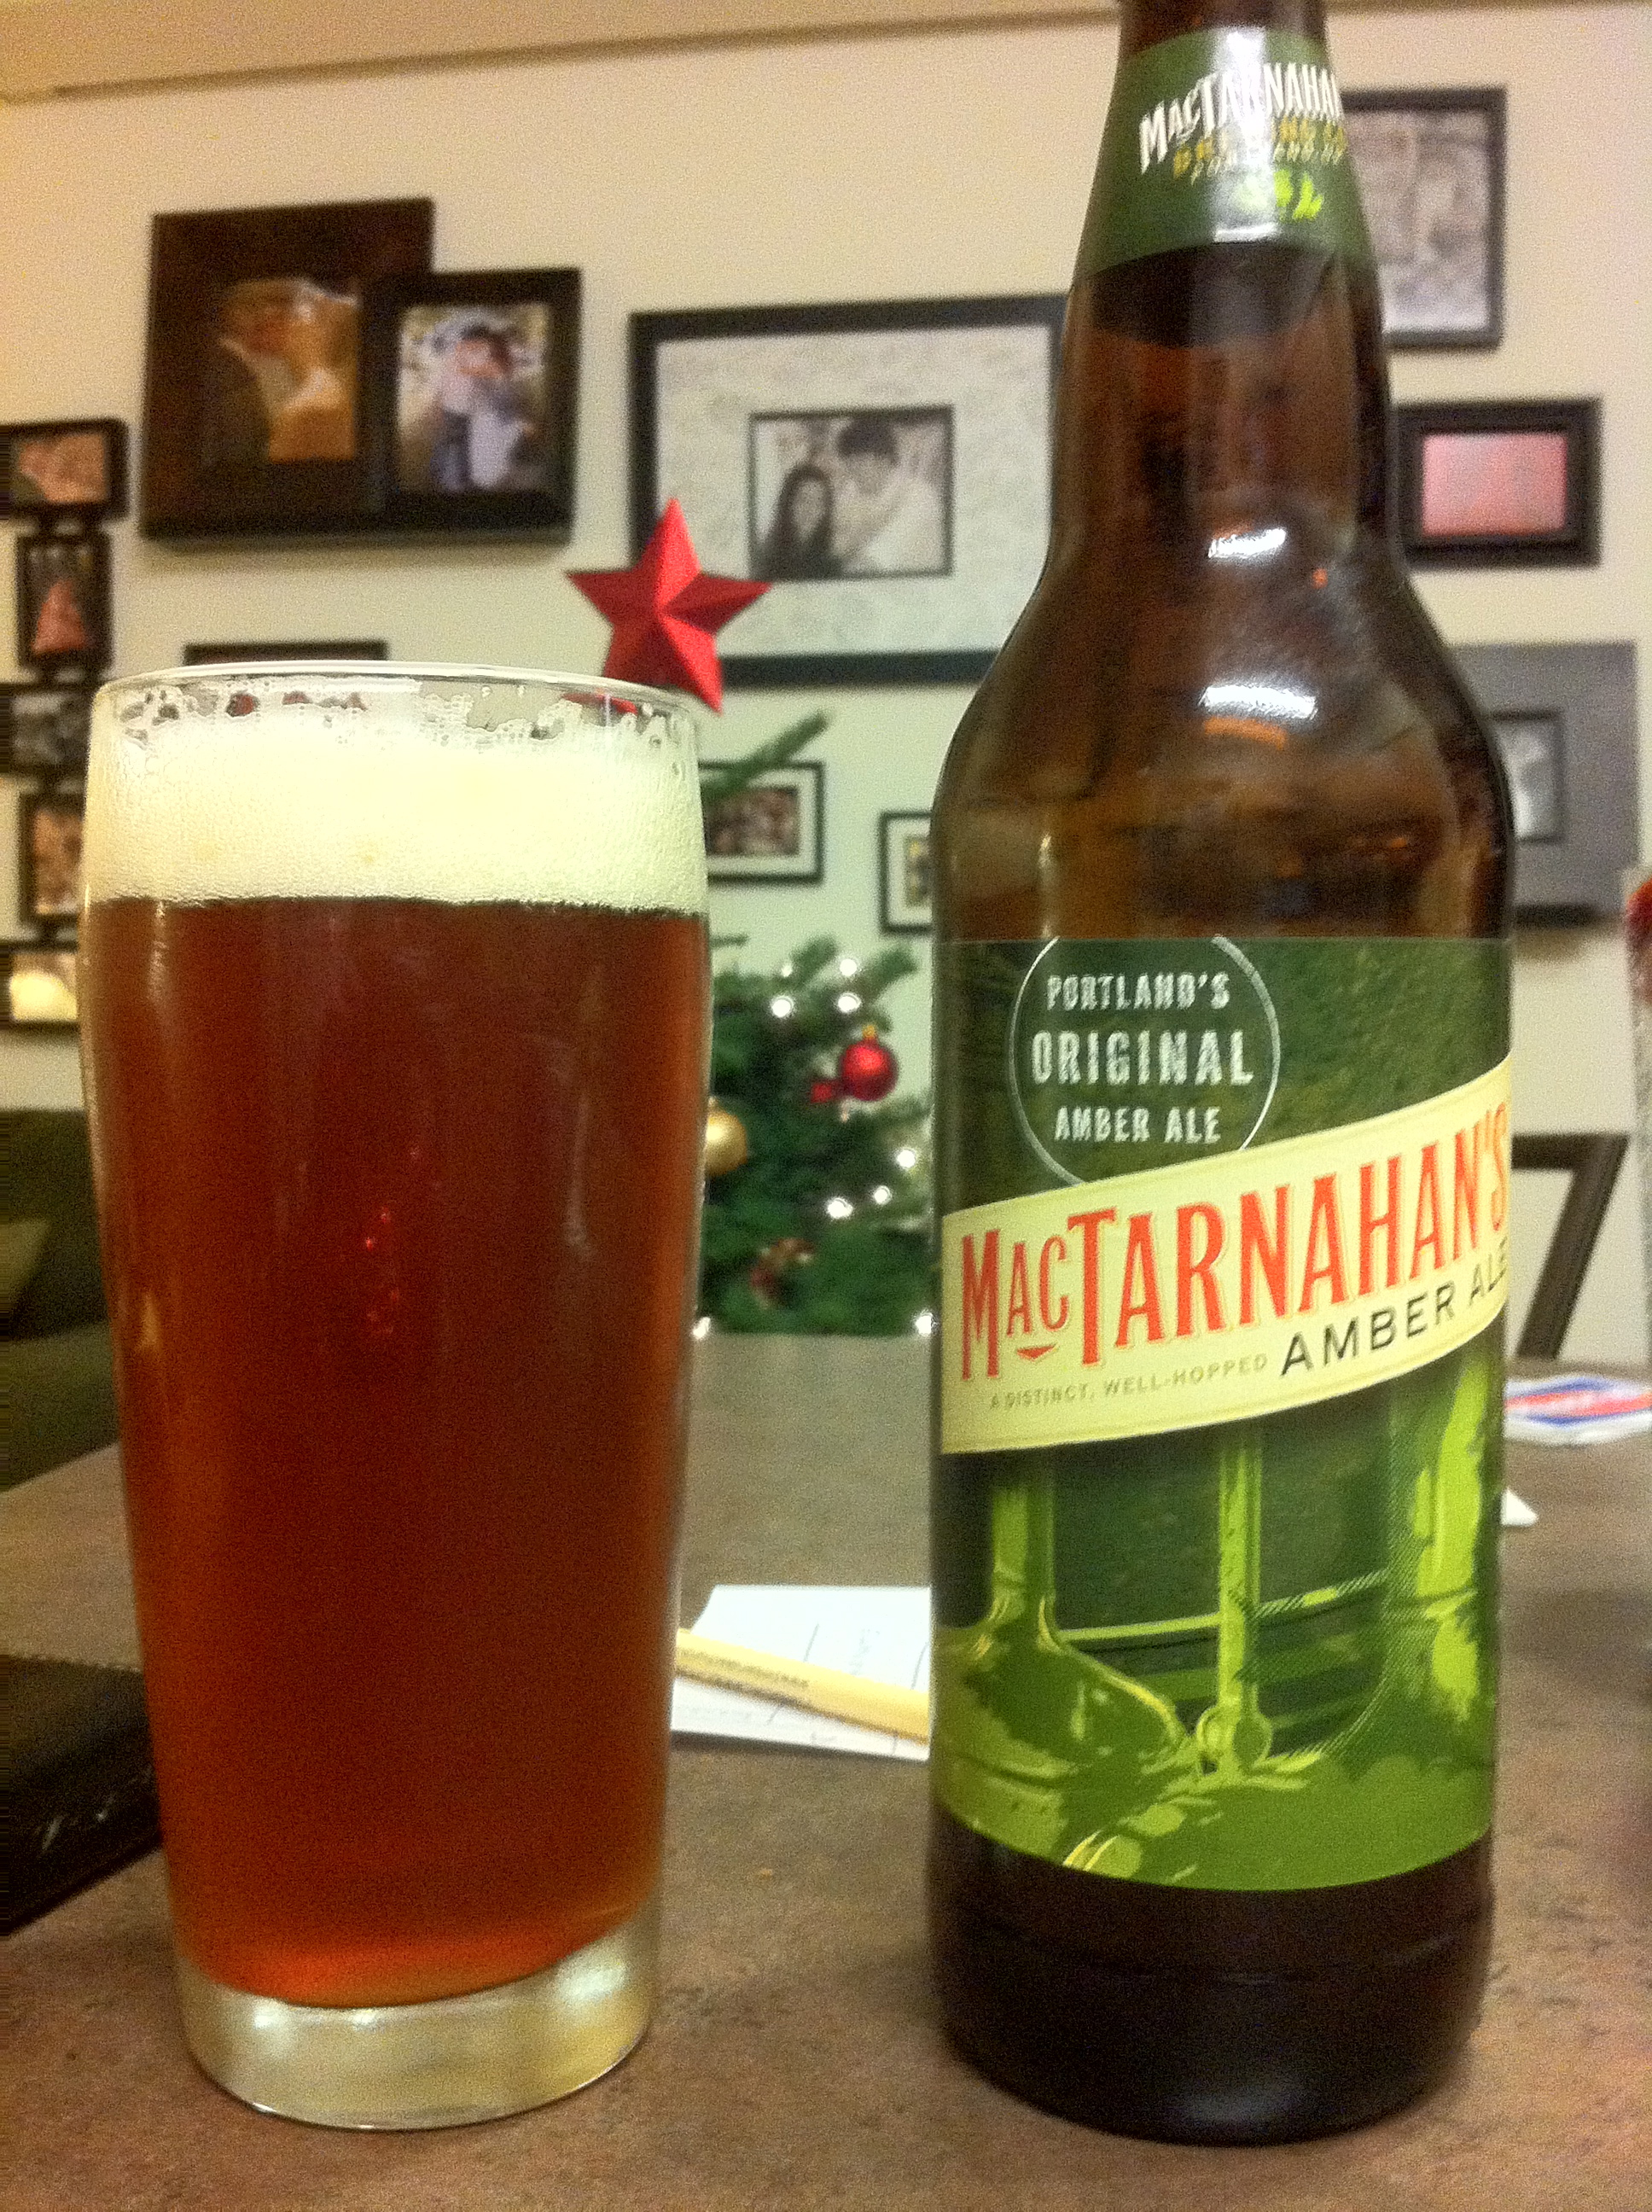 Brewbeat NW – MacTarnahan's Amber Ale from Portland, OR